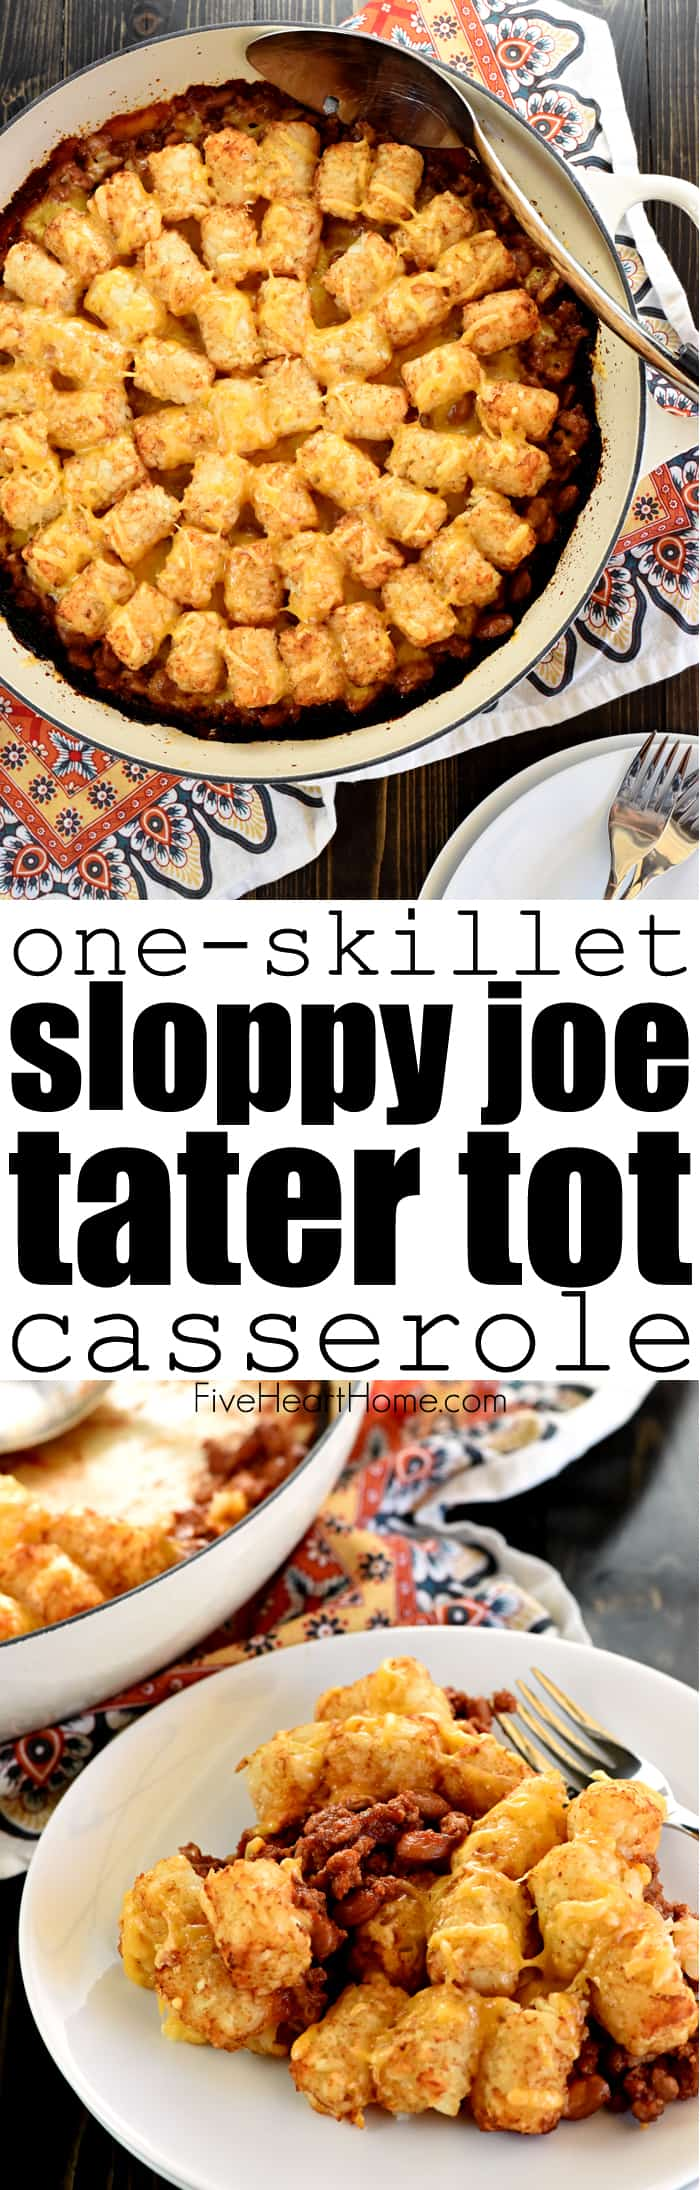 One-Skillet Sloppy Joe Tater Tot Casserole ~ a quick, easy, family-pleasing weeknight dinner recipe that's made in just one pan! | FiveHeartHome.com via @fivehearthome